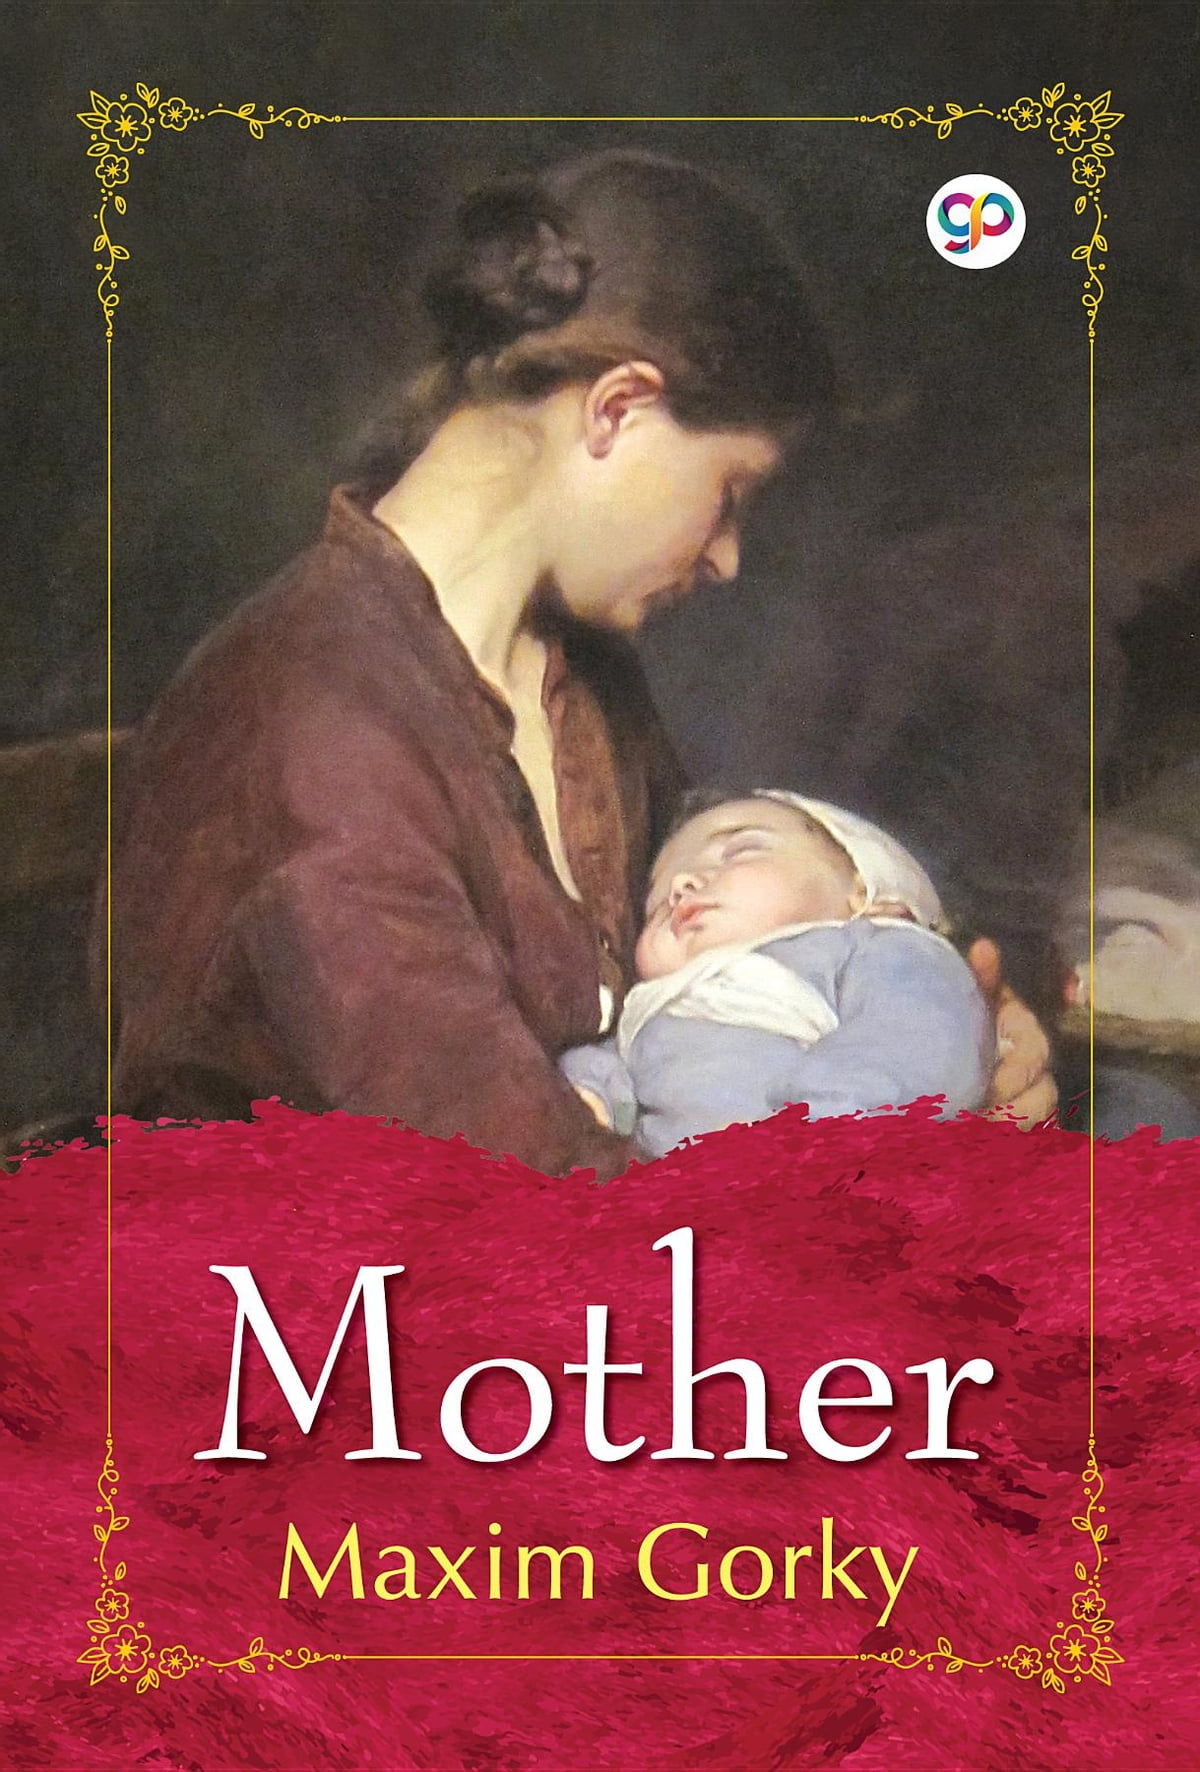 Maxim Gorky, Mother: a summary of the chapters 48